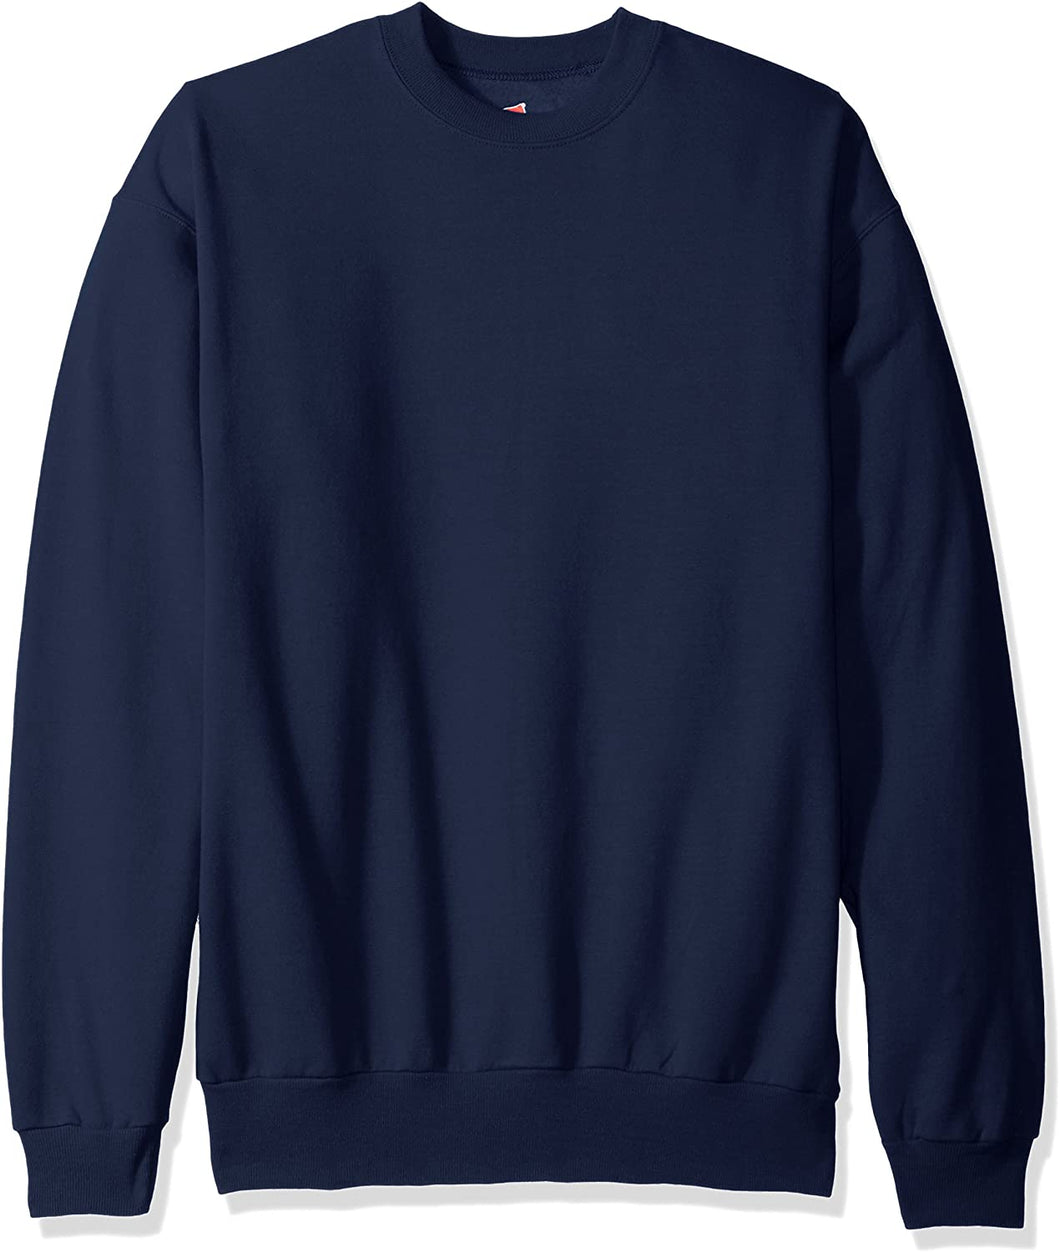 Men Ecosmart Fleece Sweatshirt